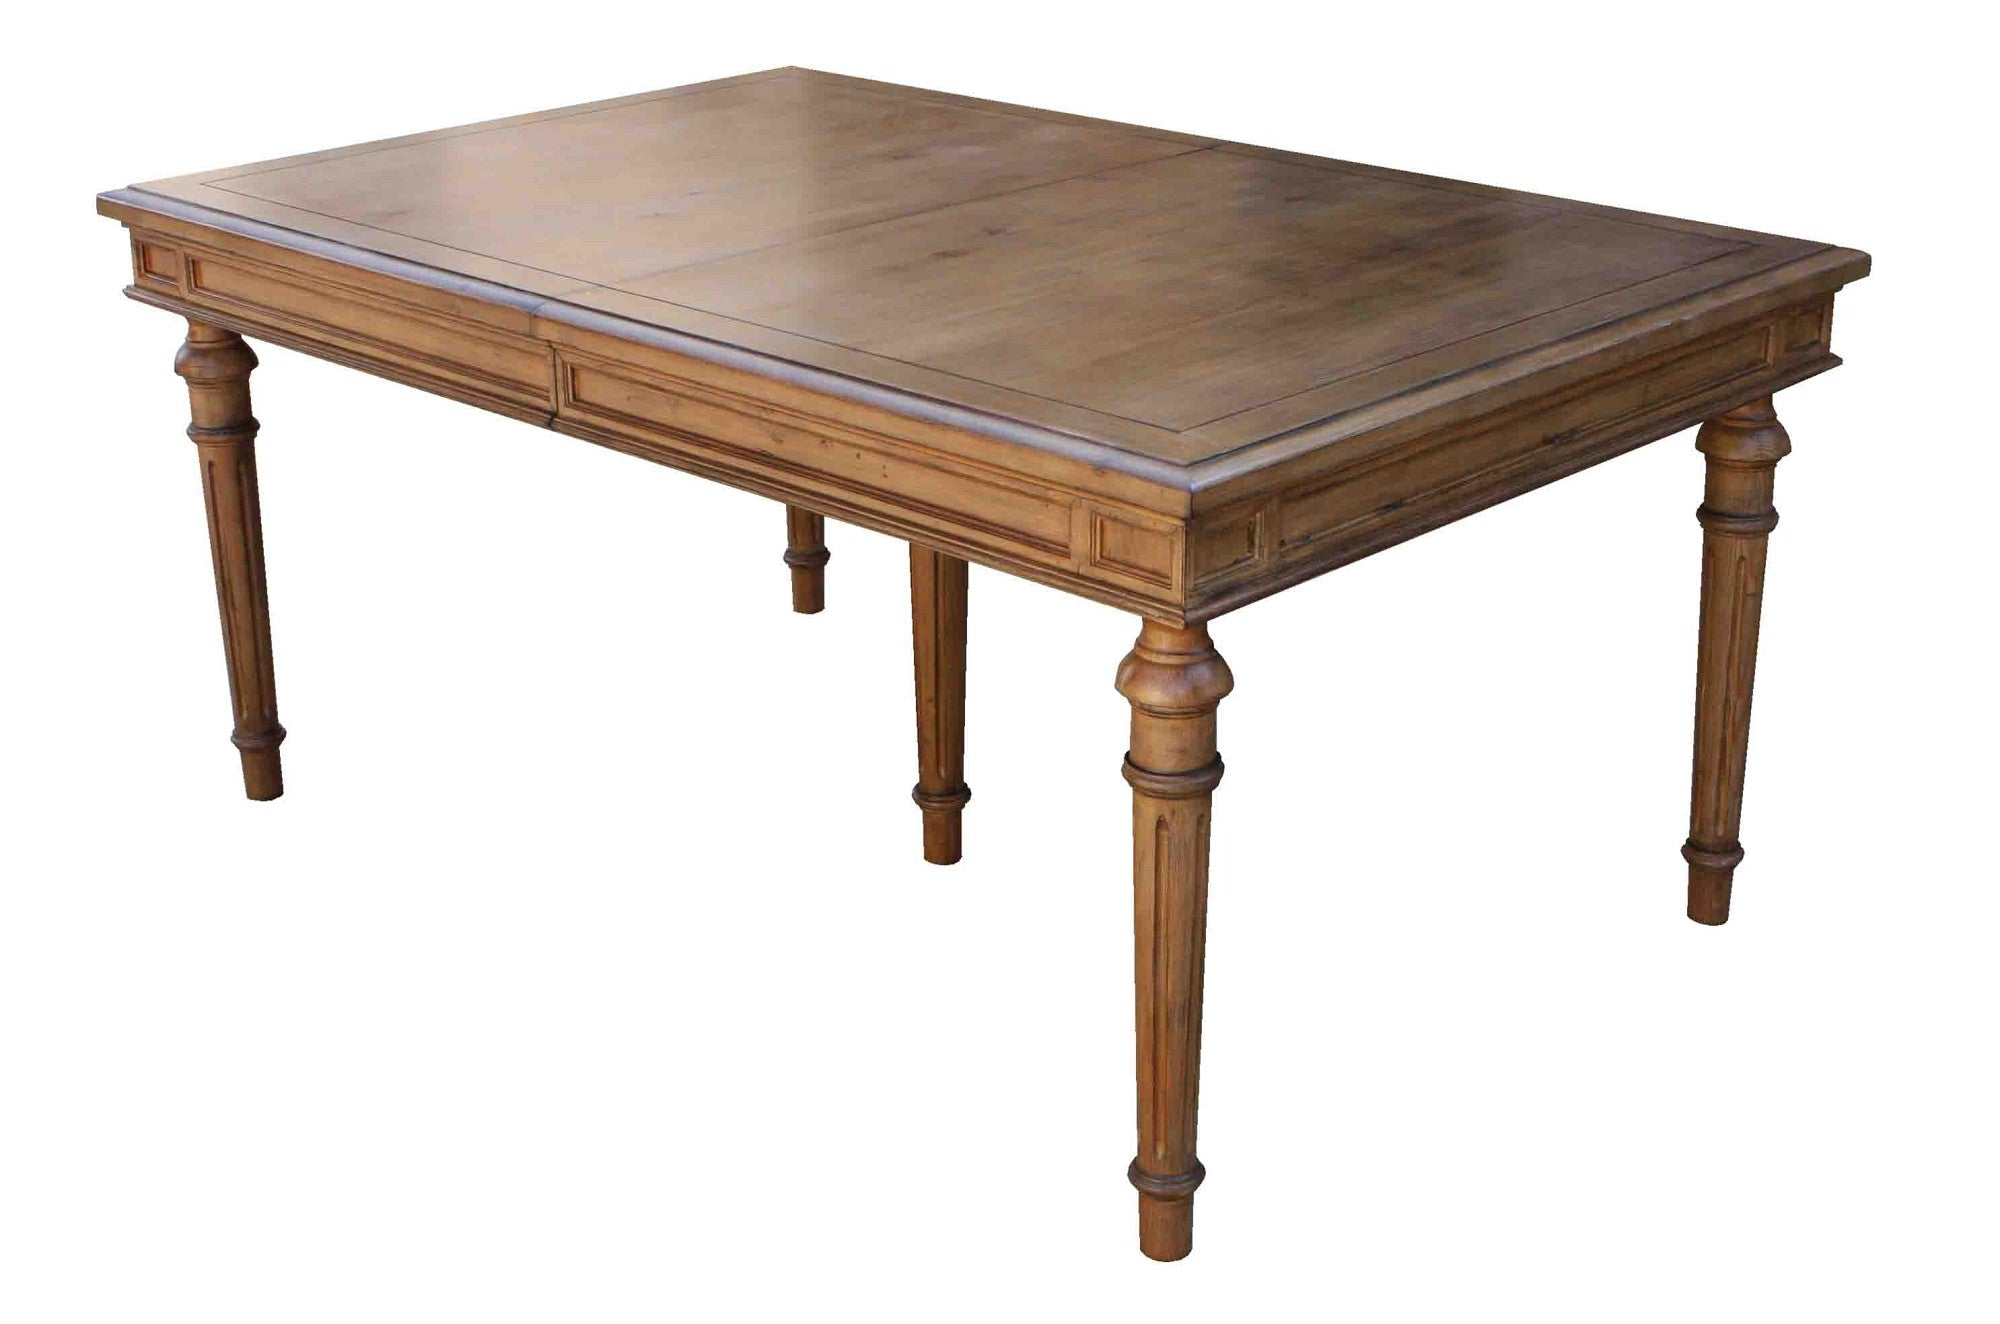 ... Classic Reclaimed Wood Colonial Fluted Leg Dining Table With Center  Extension ...